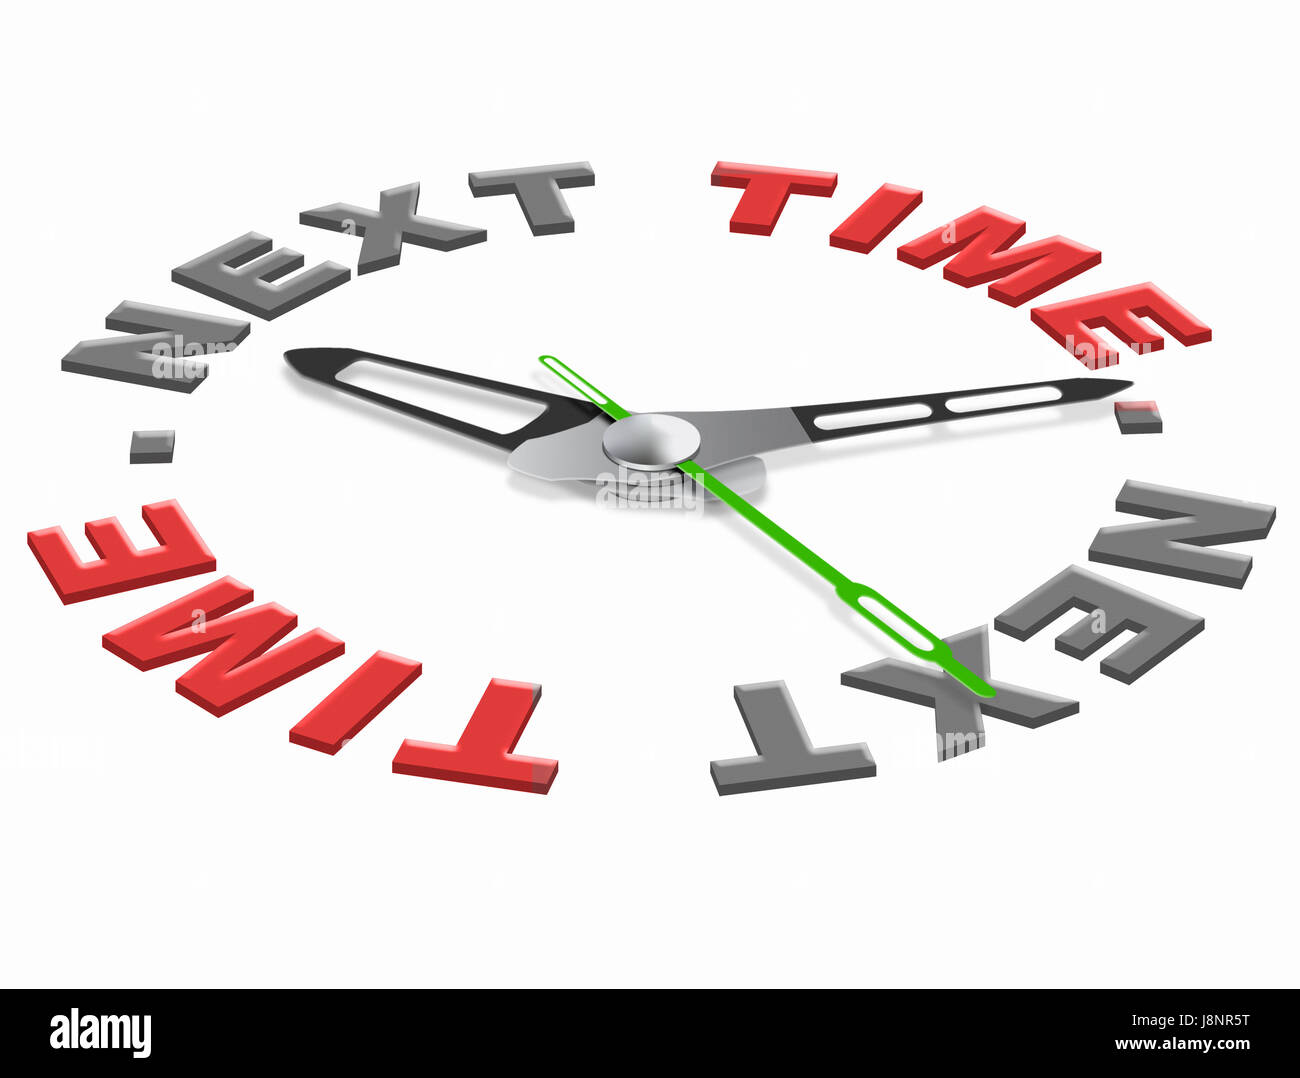 future, new, date, time, time indication, illustration, arrival, open, almost, - Stock Image